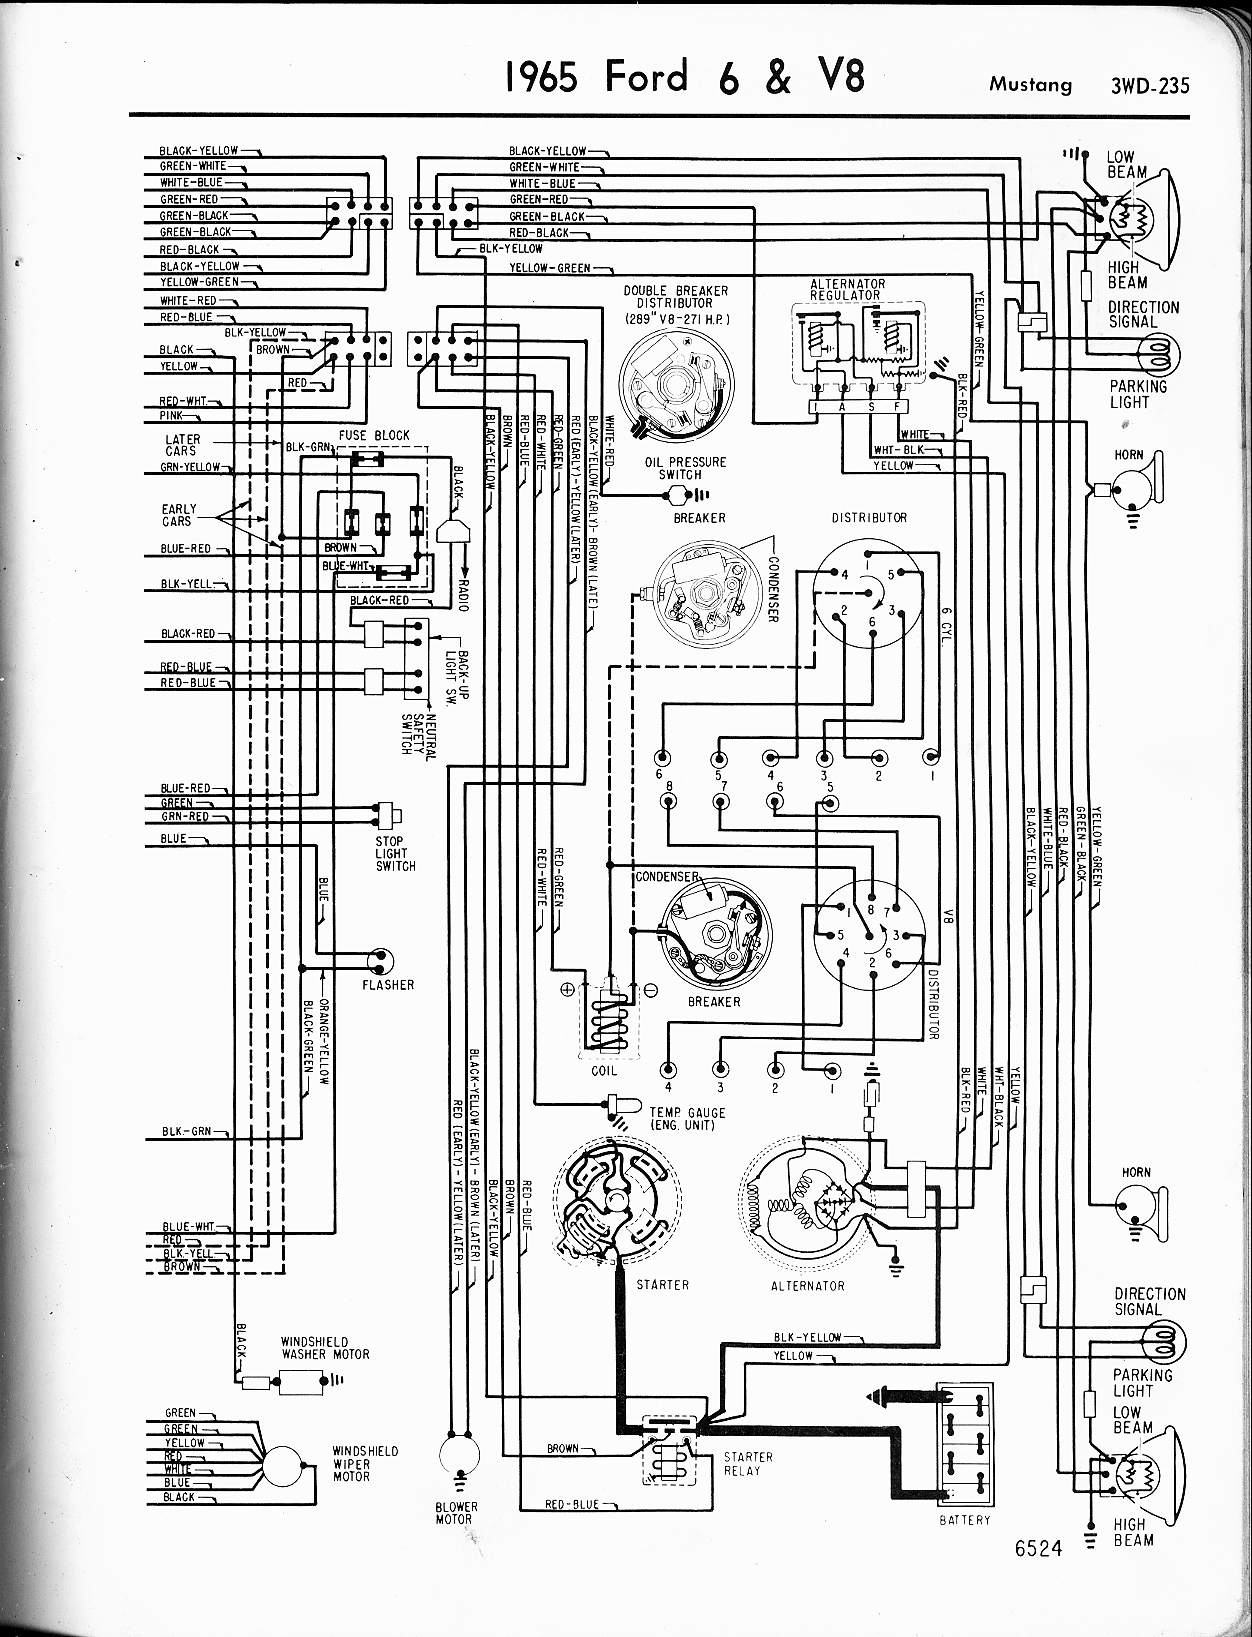 1969 Mustang Radio Wiring Diagram Schematics Ford Harness Wiper